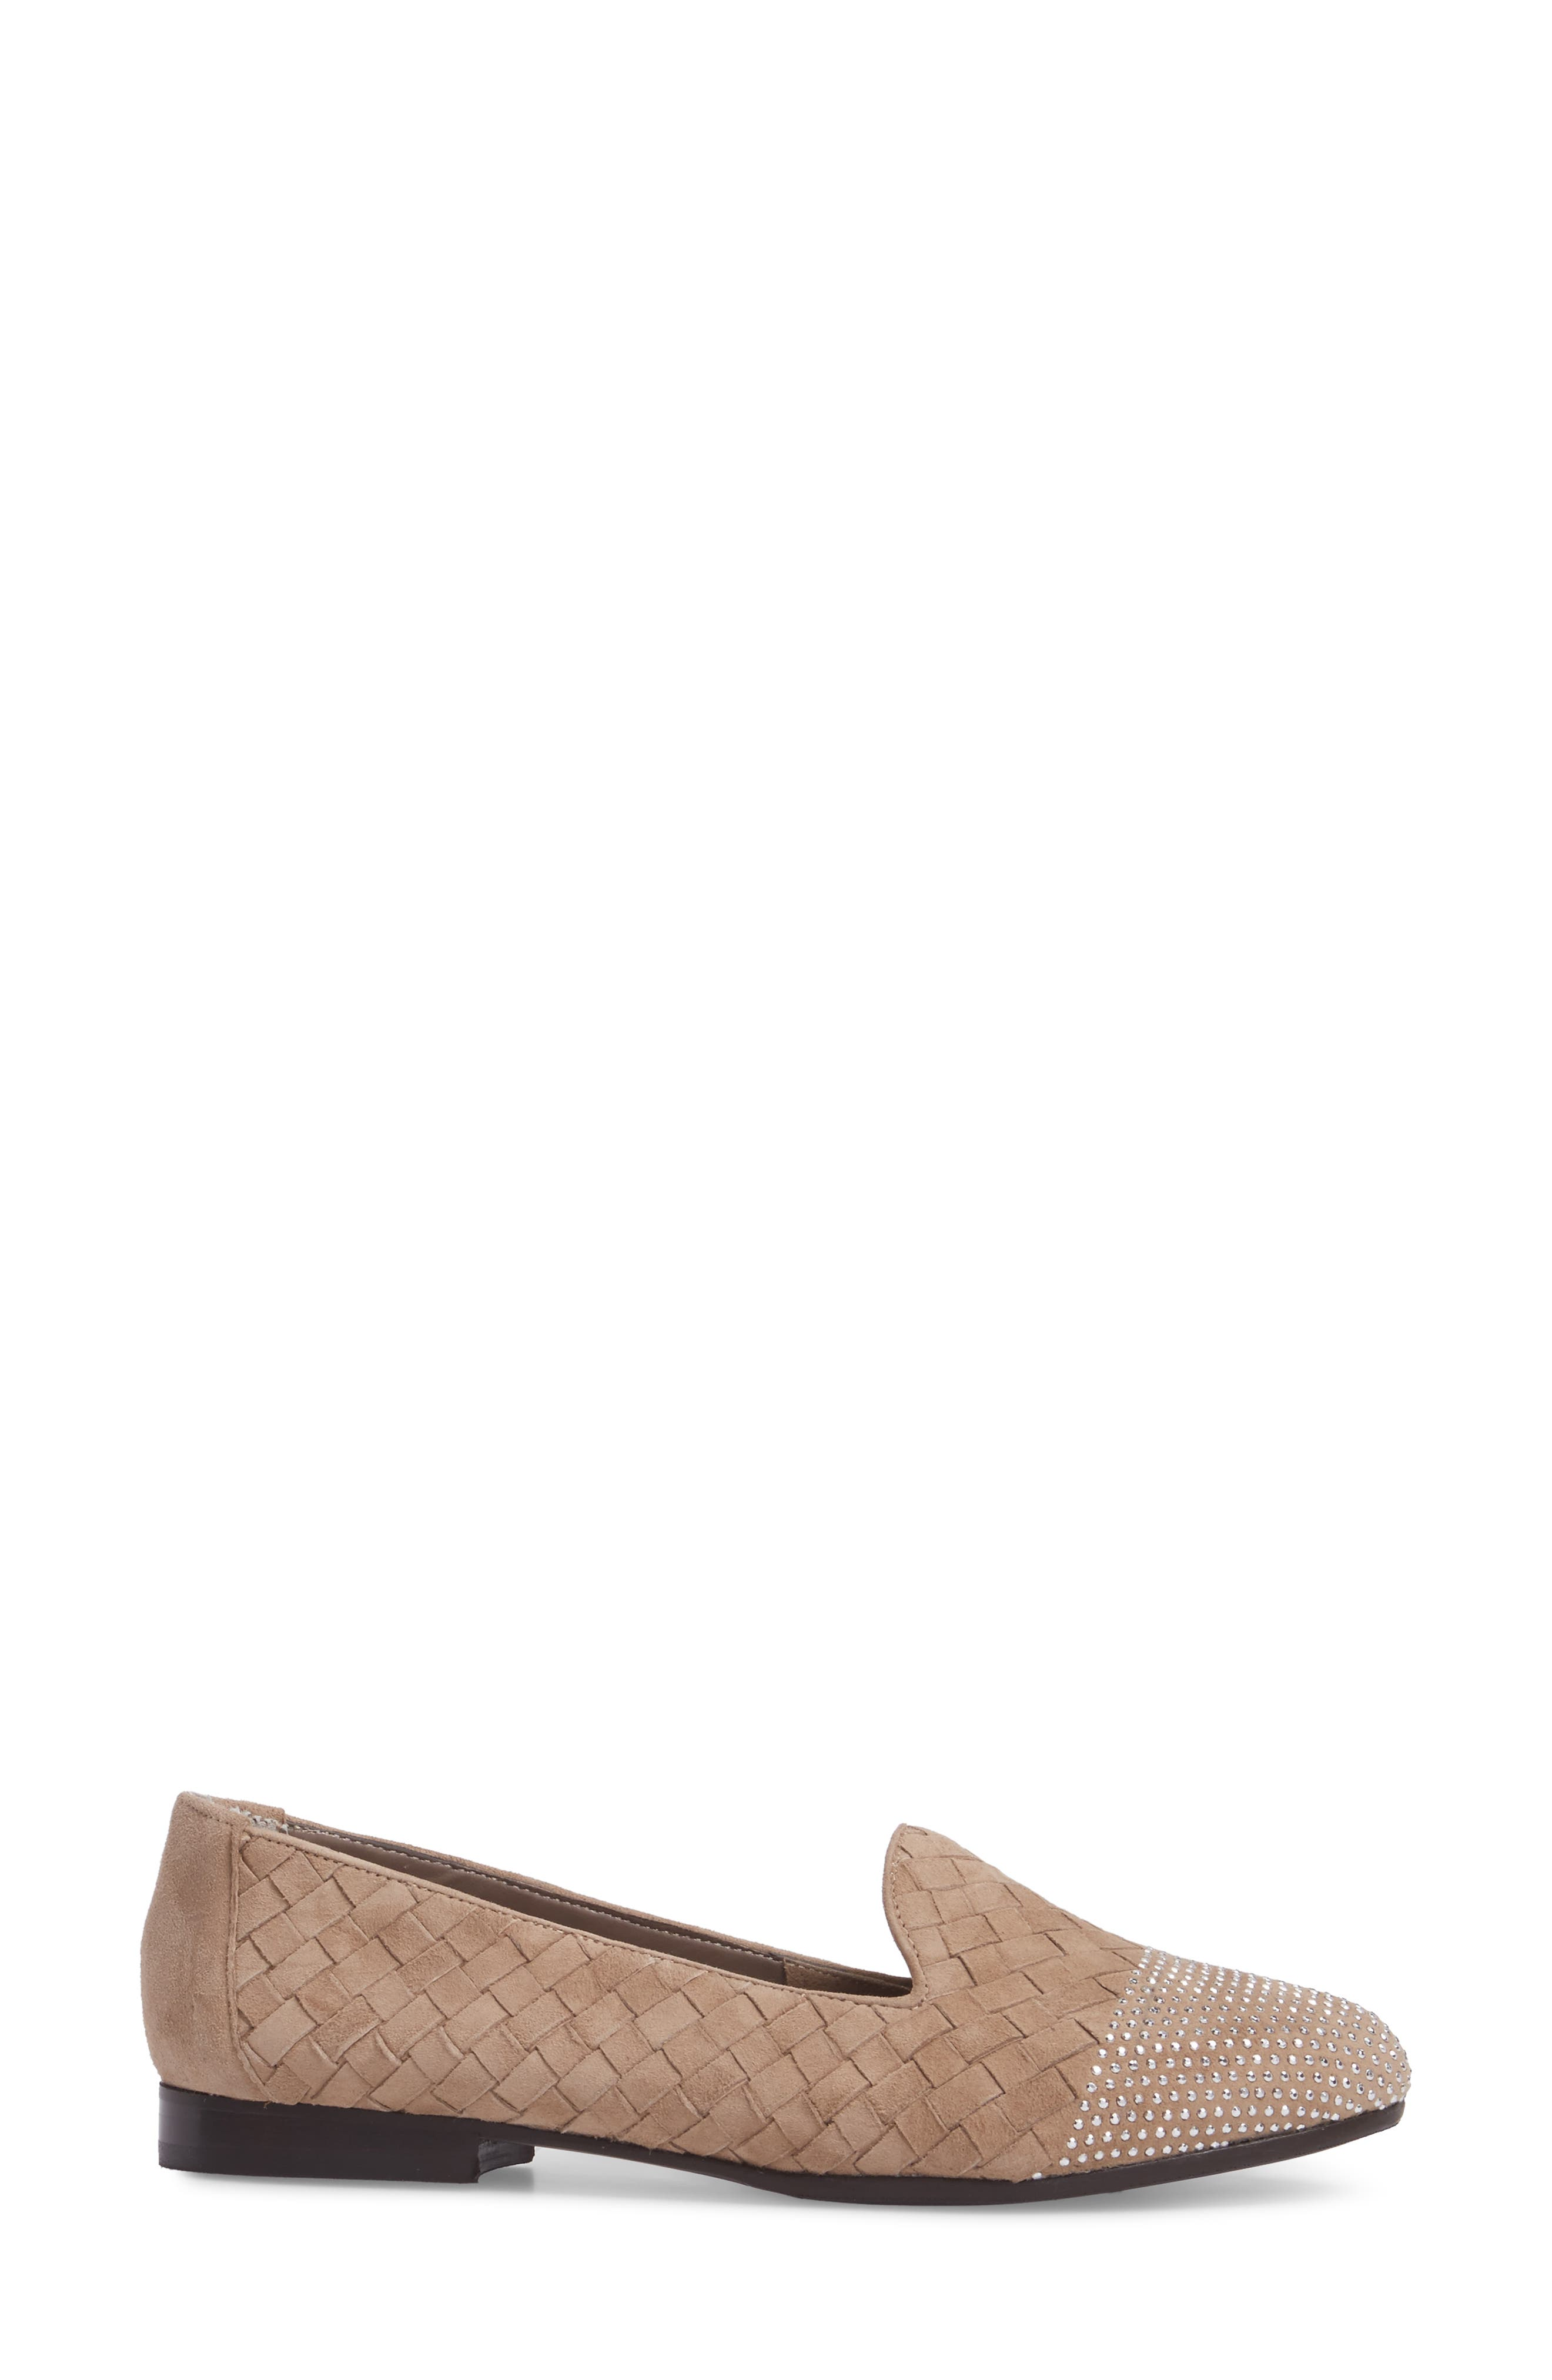 Nicia Flat,                             Alternate thumbnail 3, color,                             Light Taupe Suede